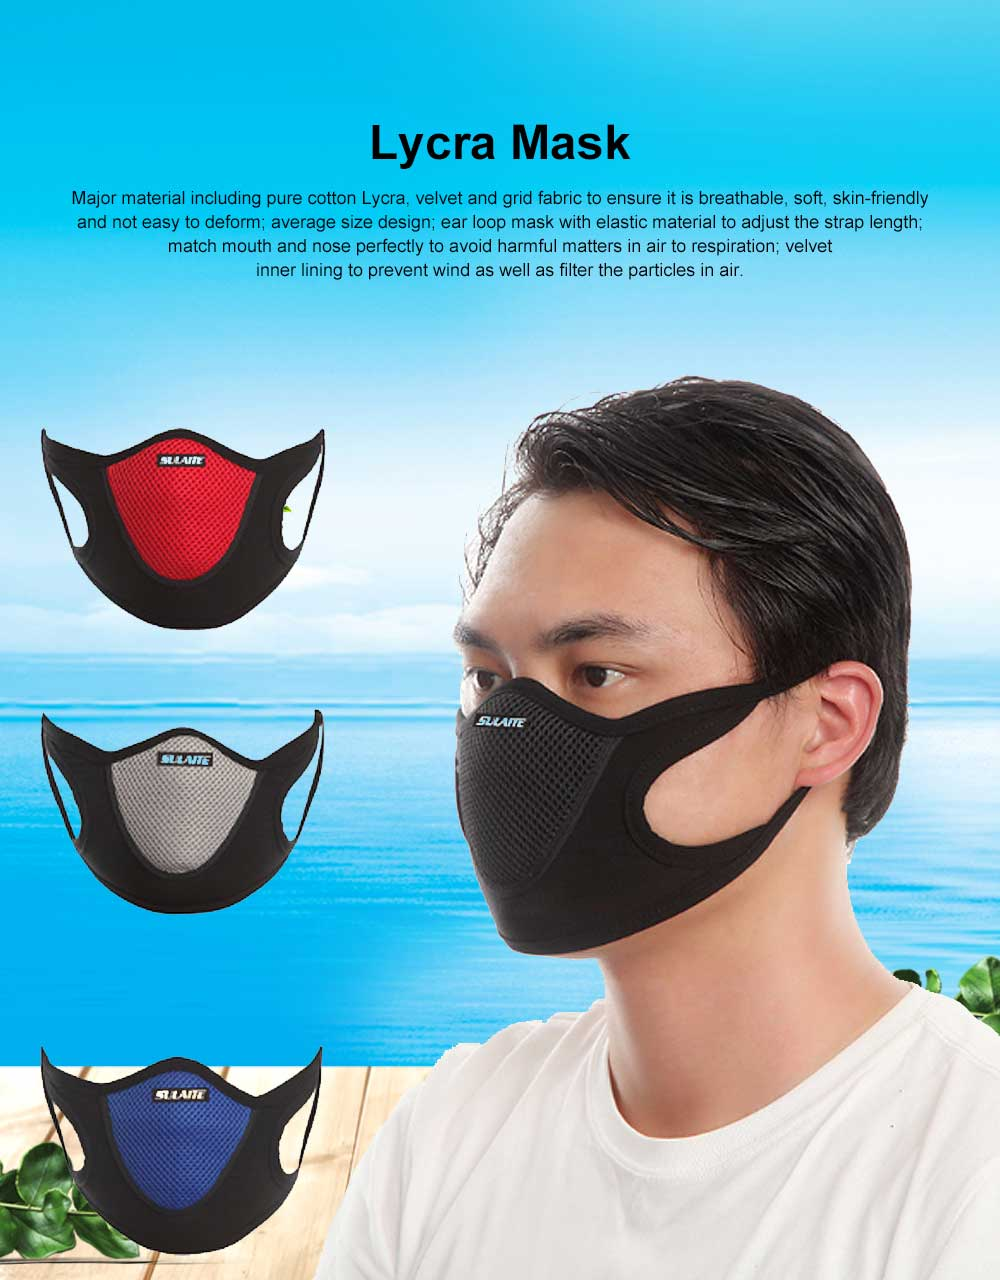 SULAITE Anti-dust & Anti-smog Masks for Outdoor Bicycle Riding Sand Prevention Protective Gauze Mask Breathable Comfortable Mouth-muffle PM2.5 Respirator 0